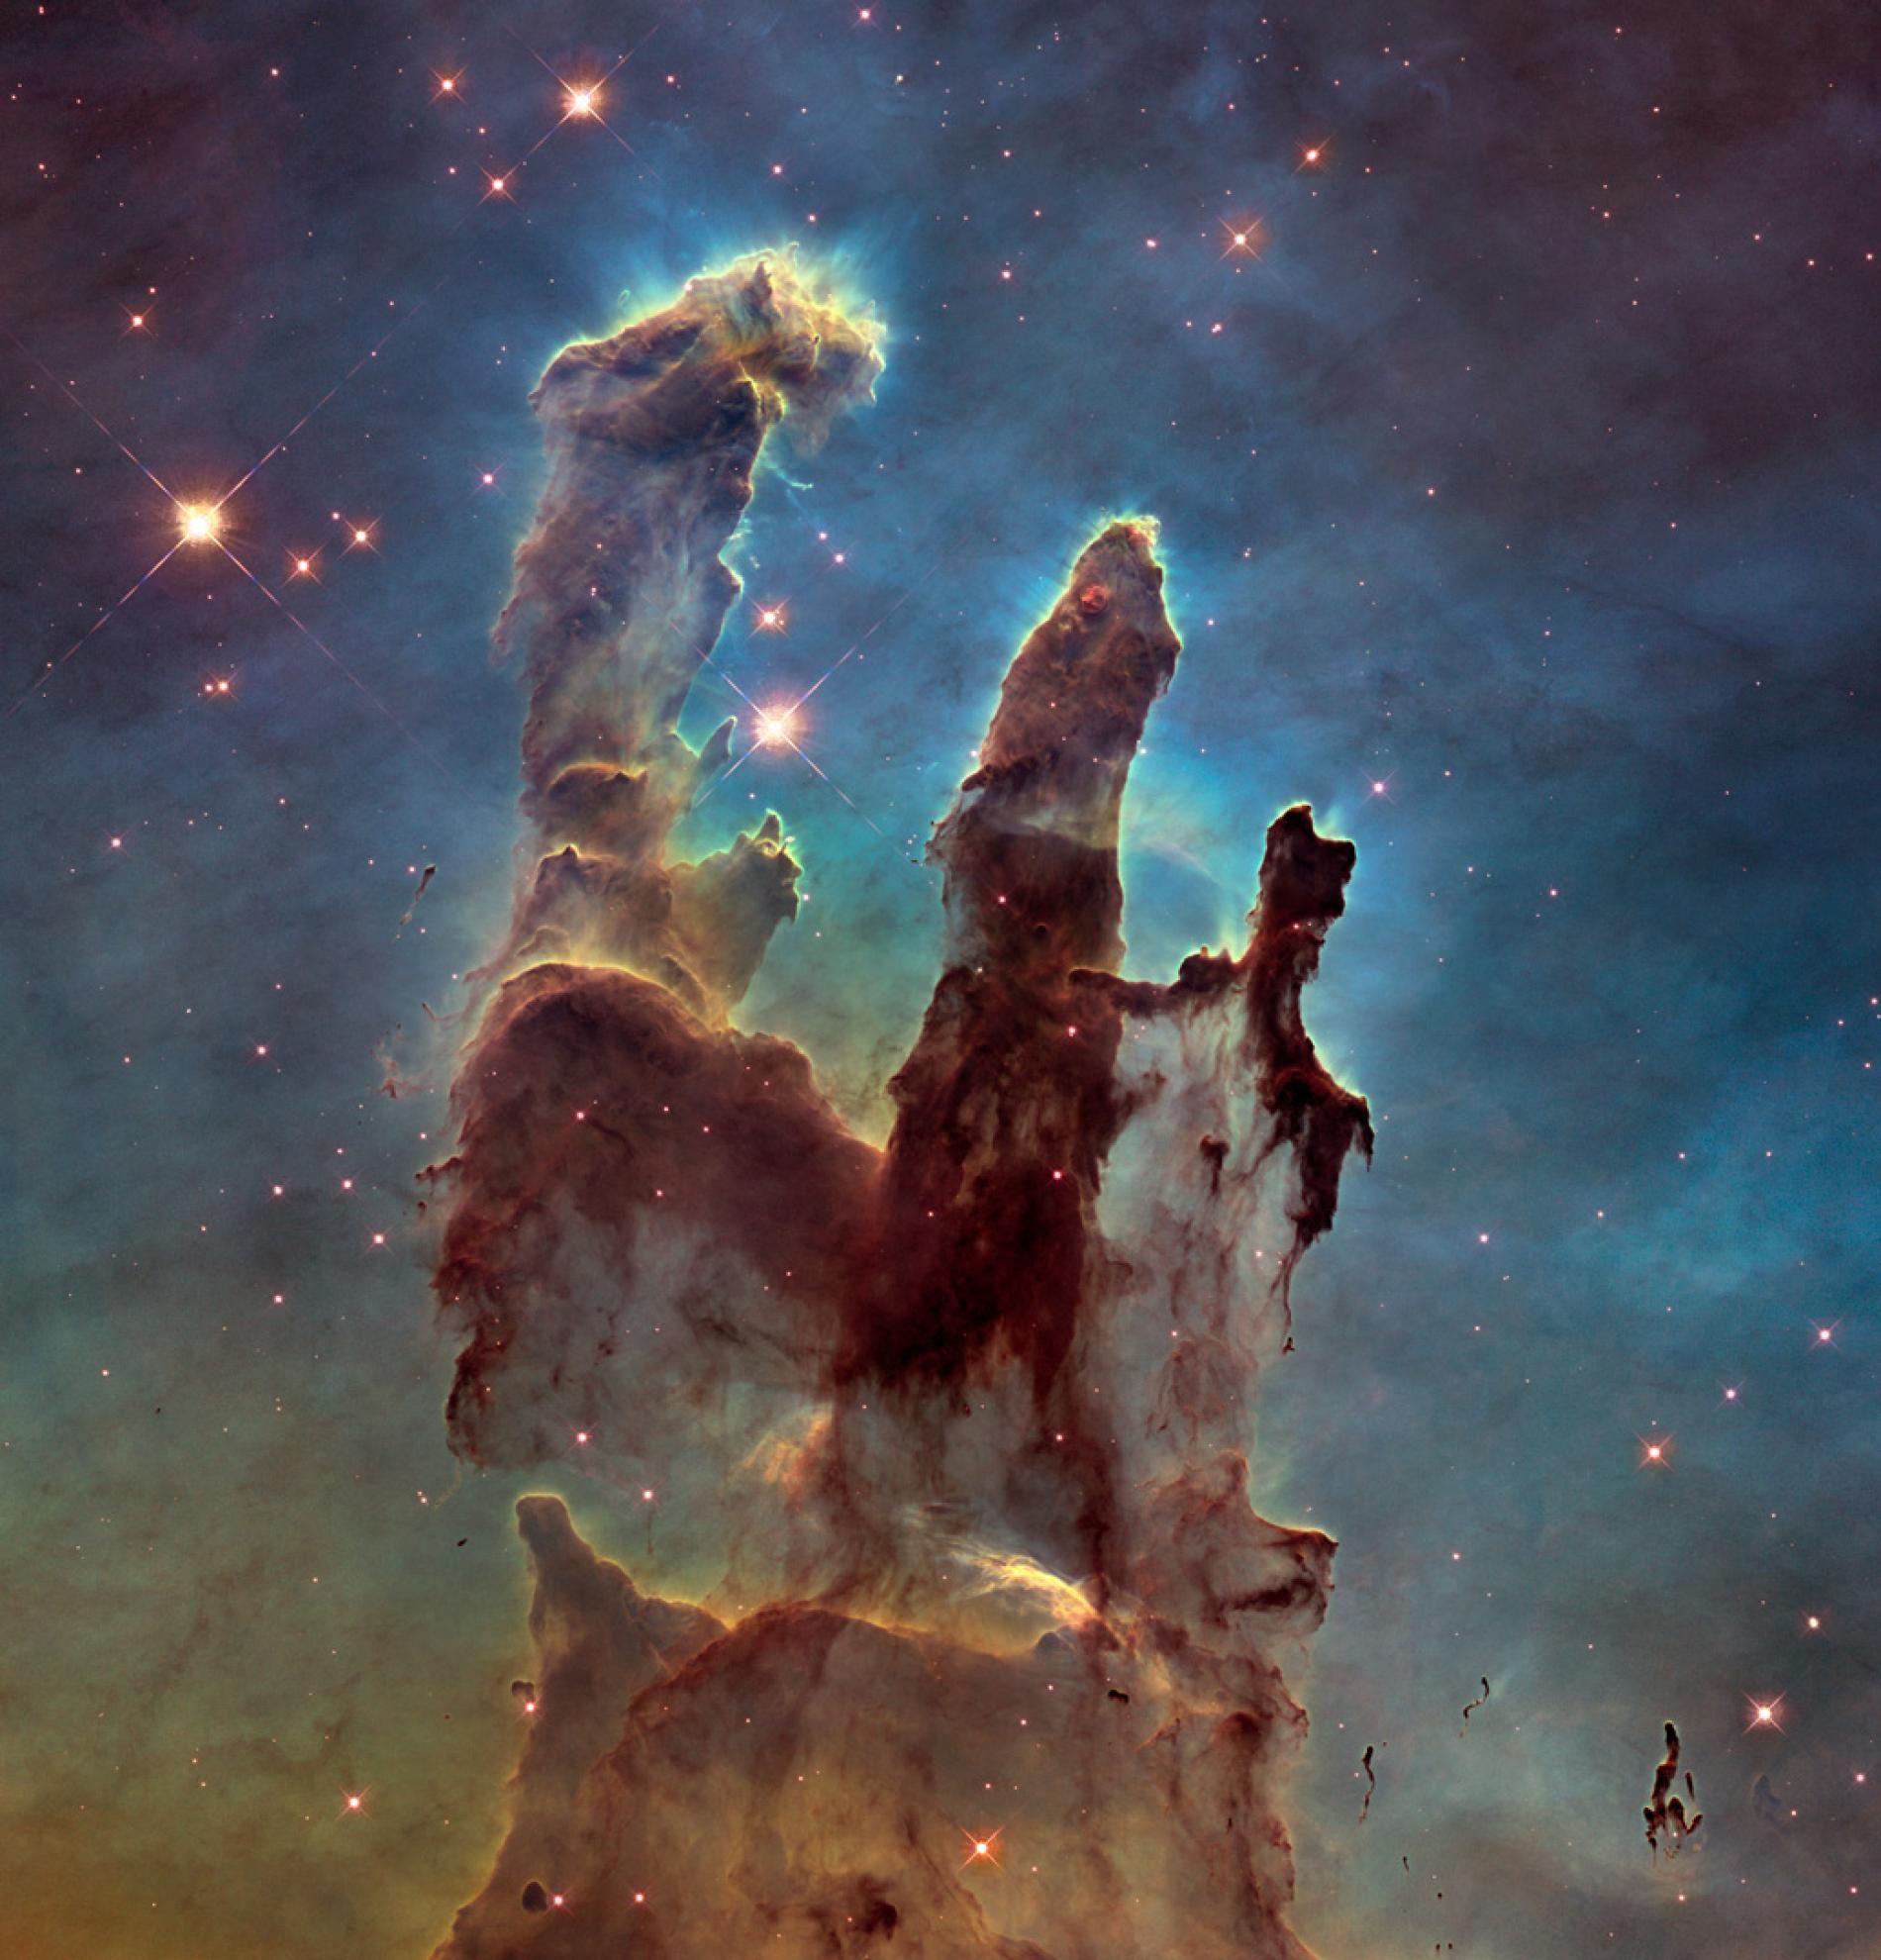 Pictures from the space telescope have dazzled us for 25 years. Now, Hubble's lead imaging scientist picks his favorite celestial views.